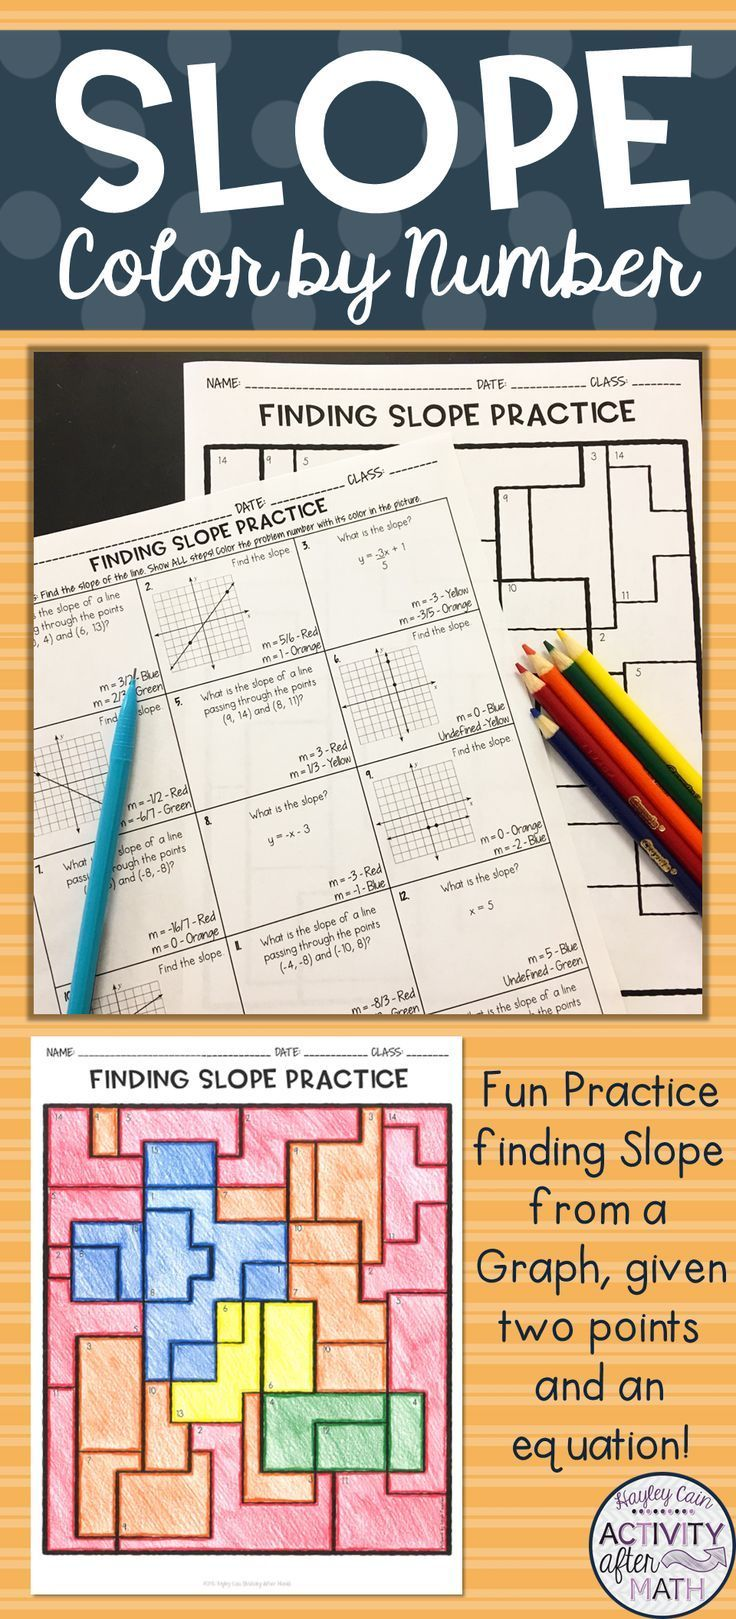 Finding Slope From A Graph Given Two Points And An Equation Coloring Activity Finding Slope High School Activities Math